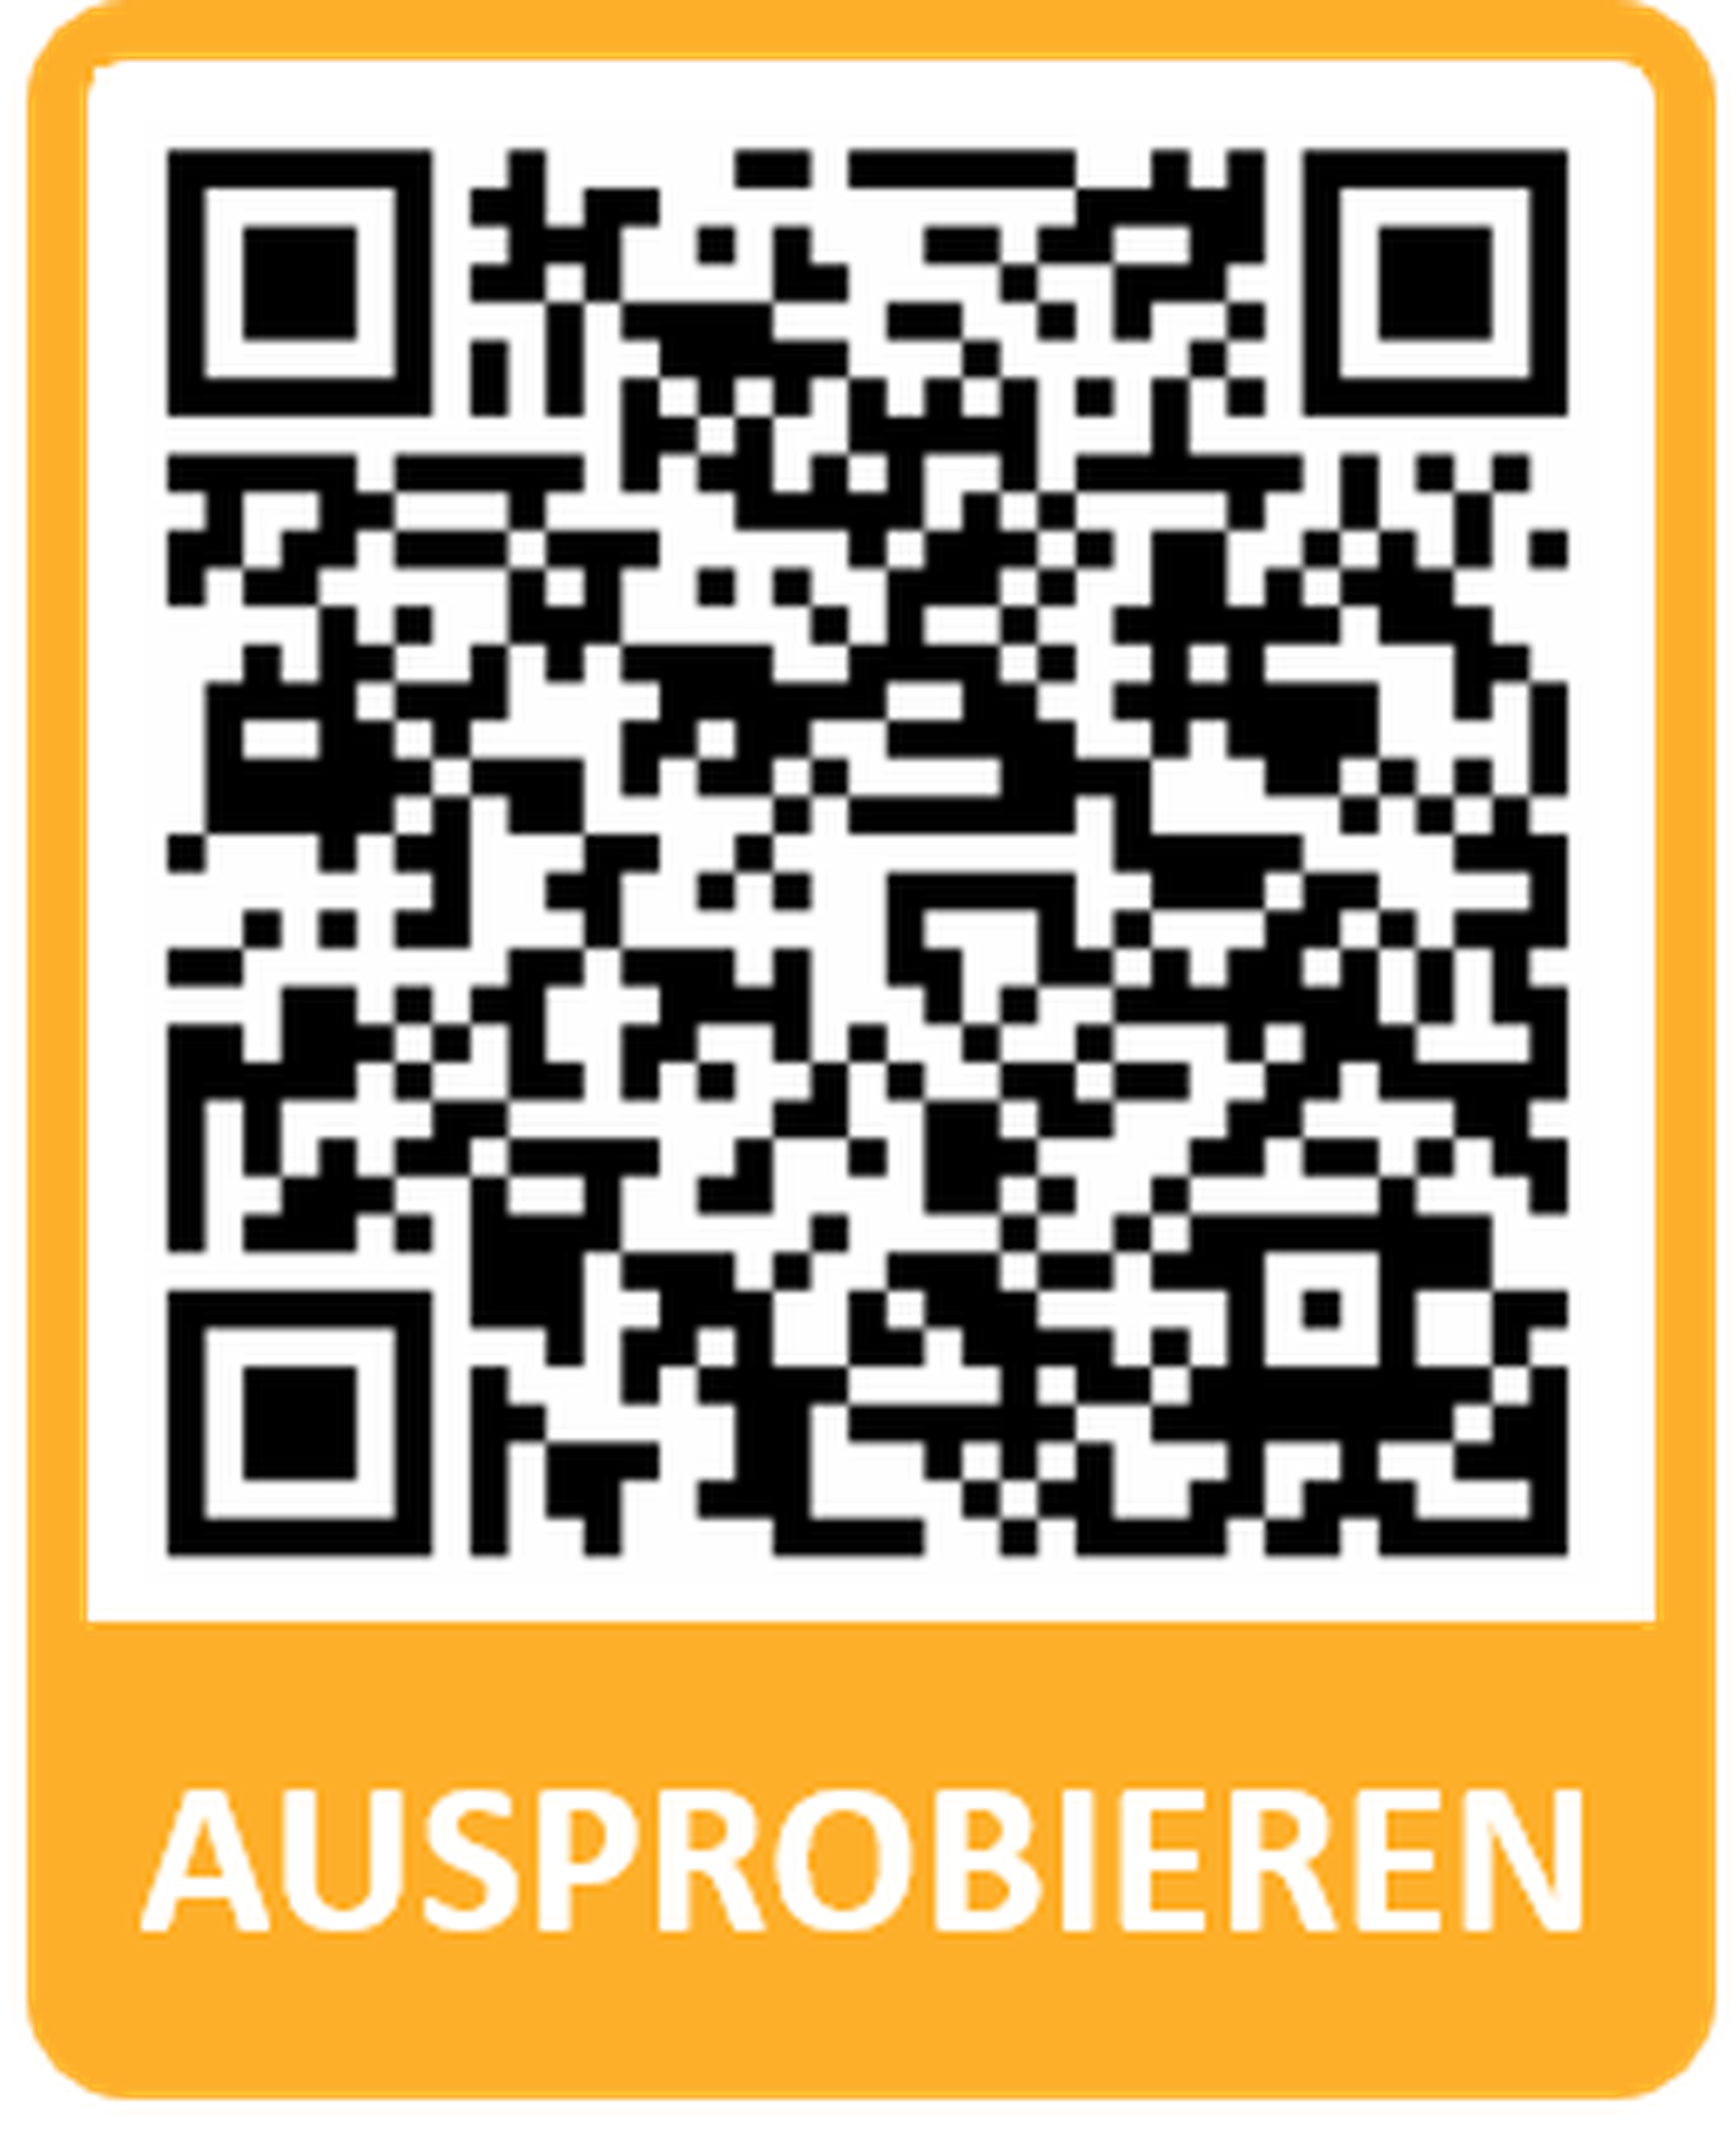 AT-Mobile-Search-Ad-QR Code.png